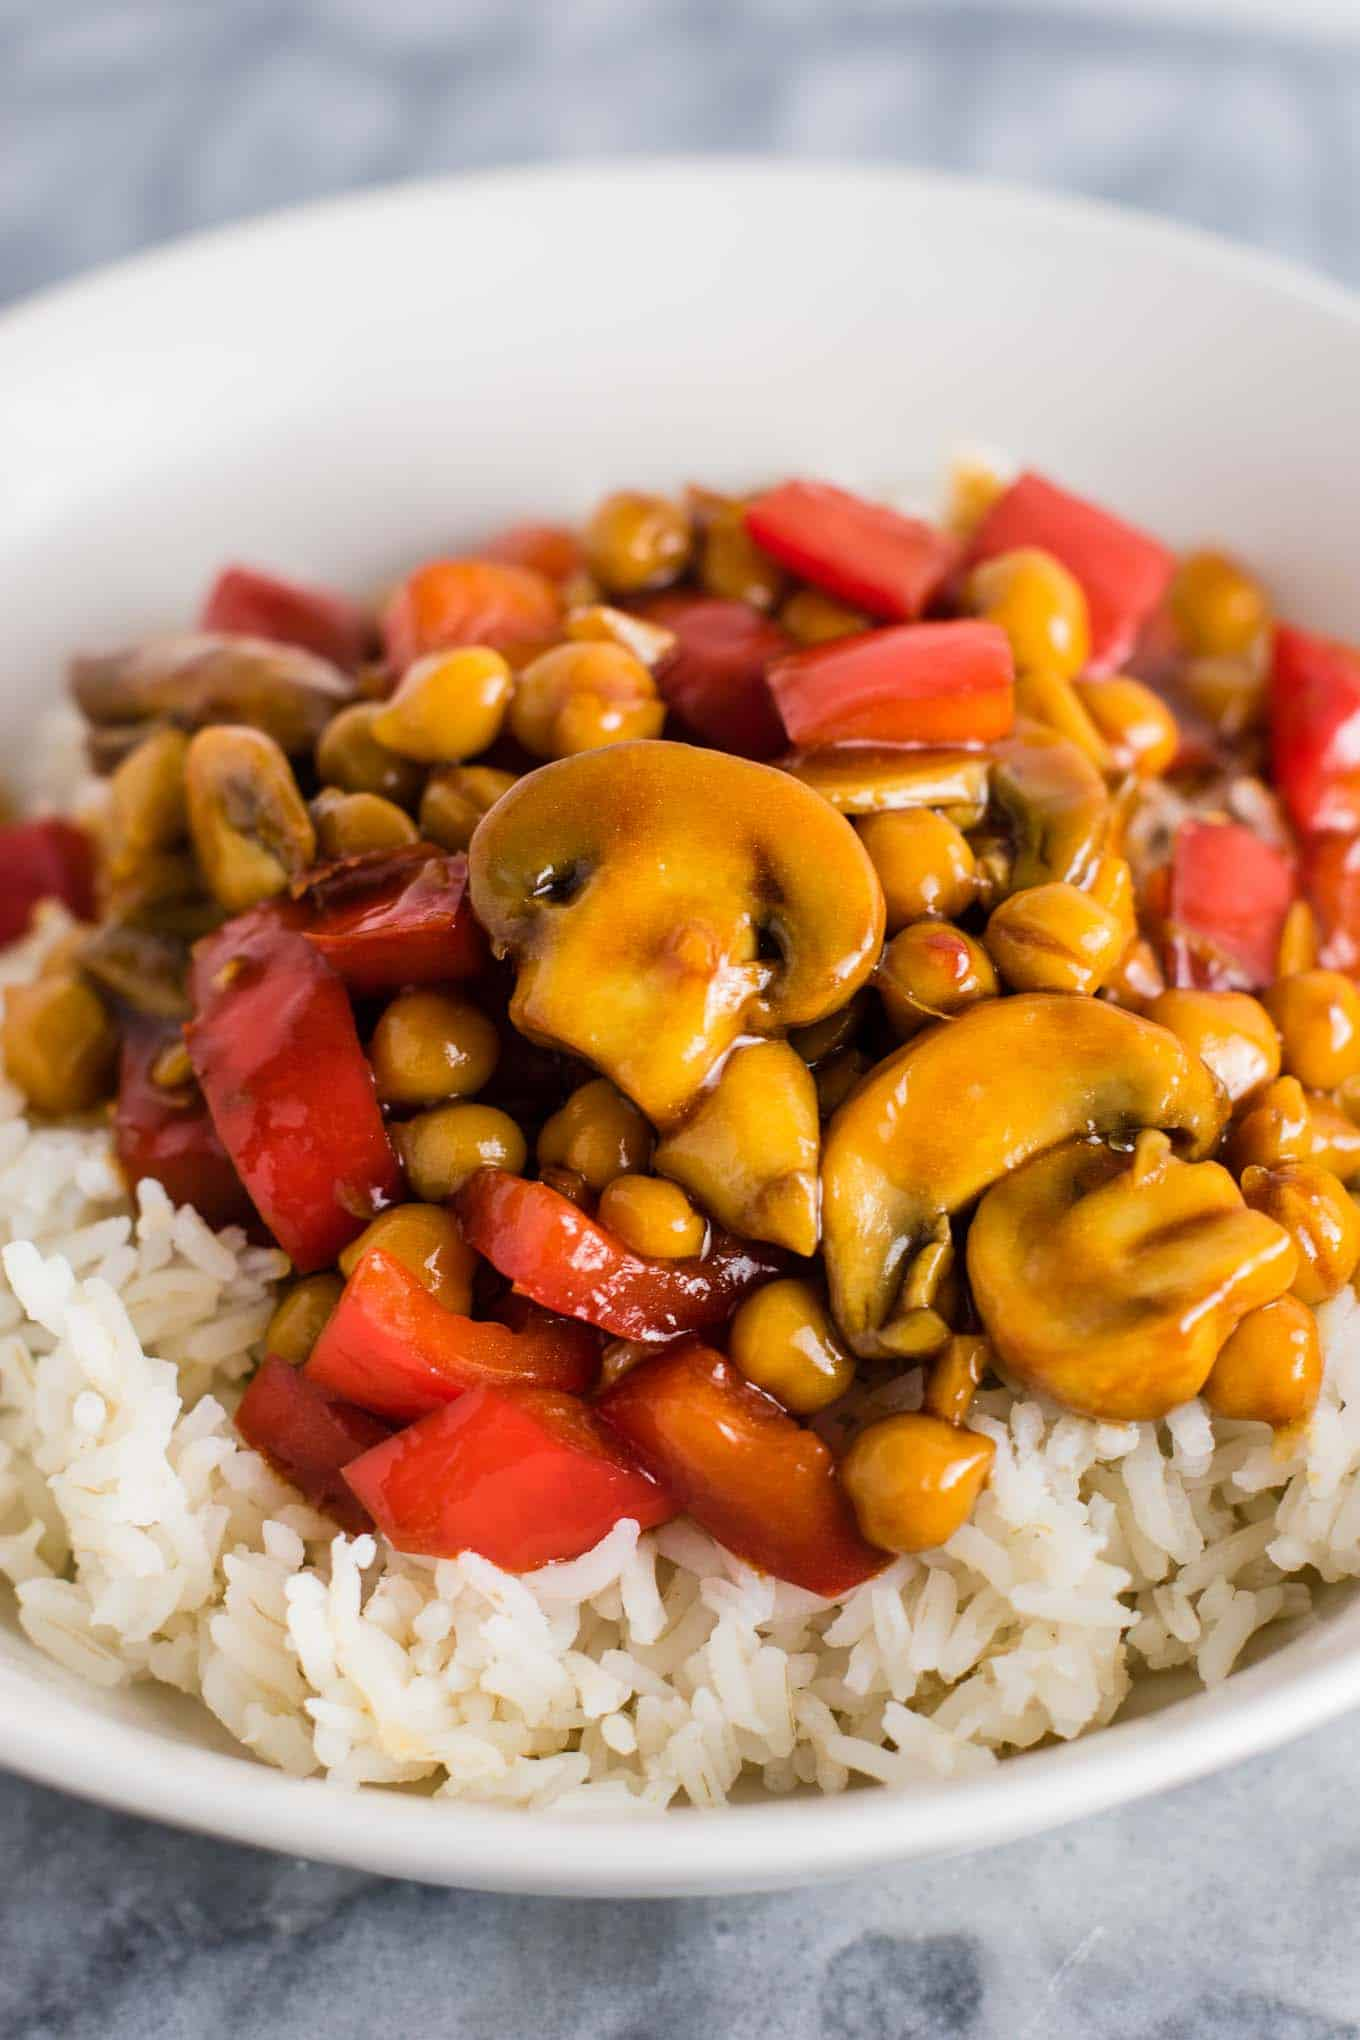 30 minute chickpea stir fry recipe with bell peppers, mushrooms, and homemade stir fry sauce. My go to easy vegan dinner! #chickpeastirfry #vegan #dinner #30minutedinner #vegandinner